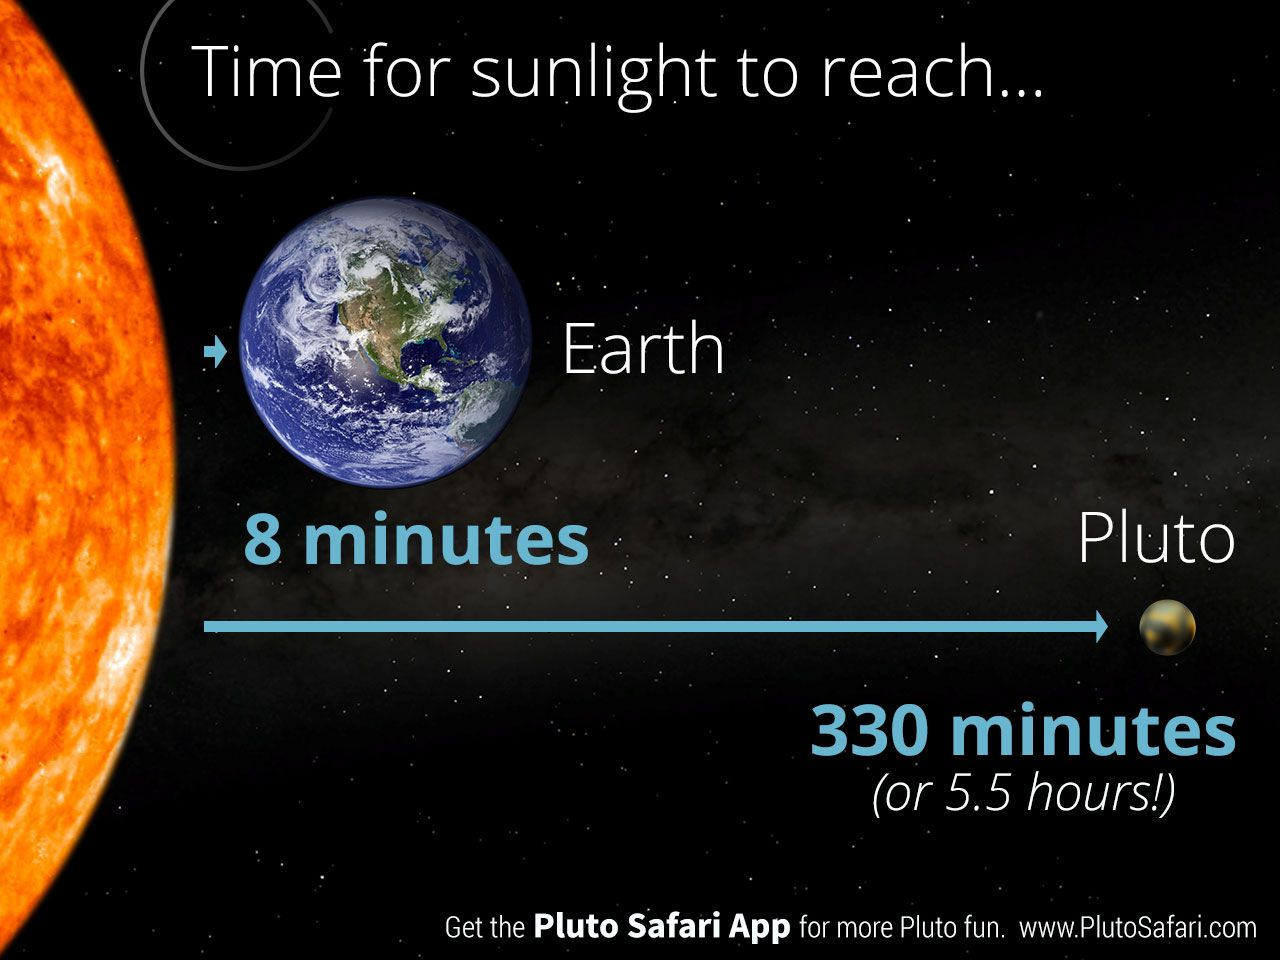 8b9ff0b4f14a122ce32c20deafb4f8ac - How Long Does It Take To Get Around The Earth